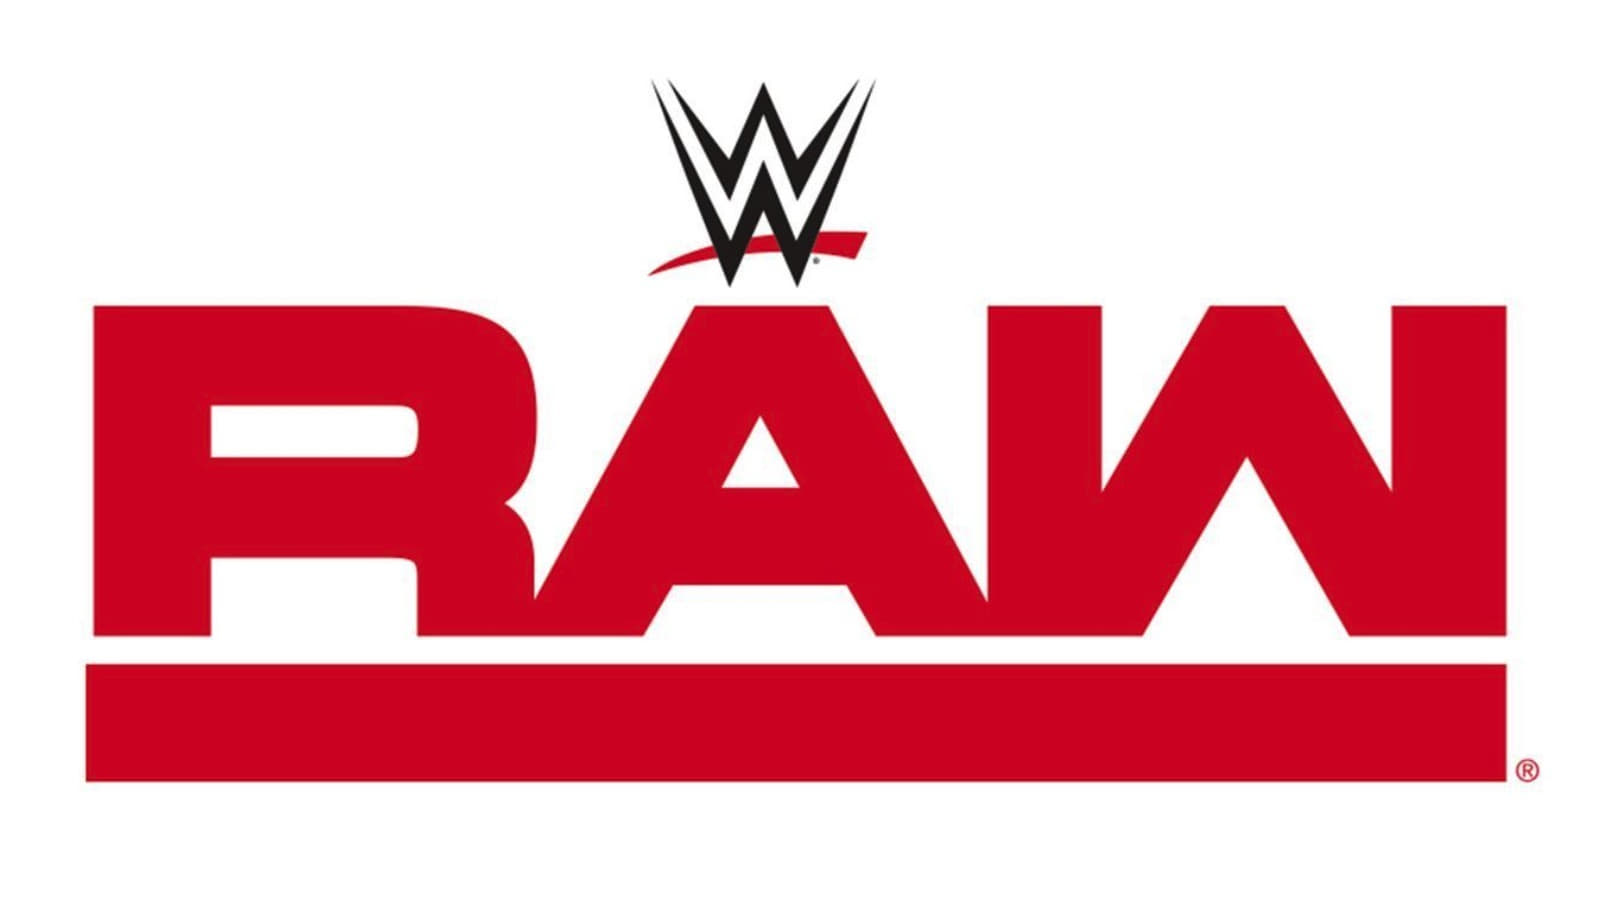 WWE Raw - Season 23 Episode 36 : September 7, 2015 (Baltimore, MD)